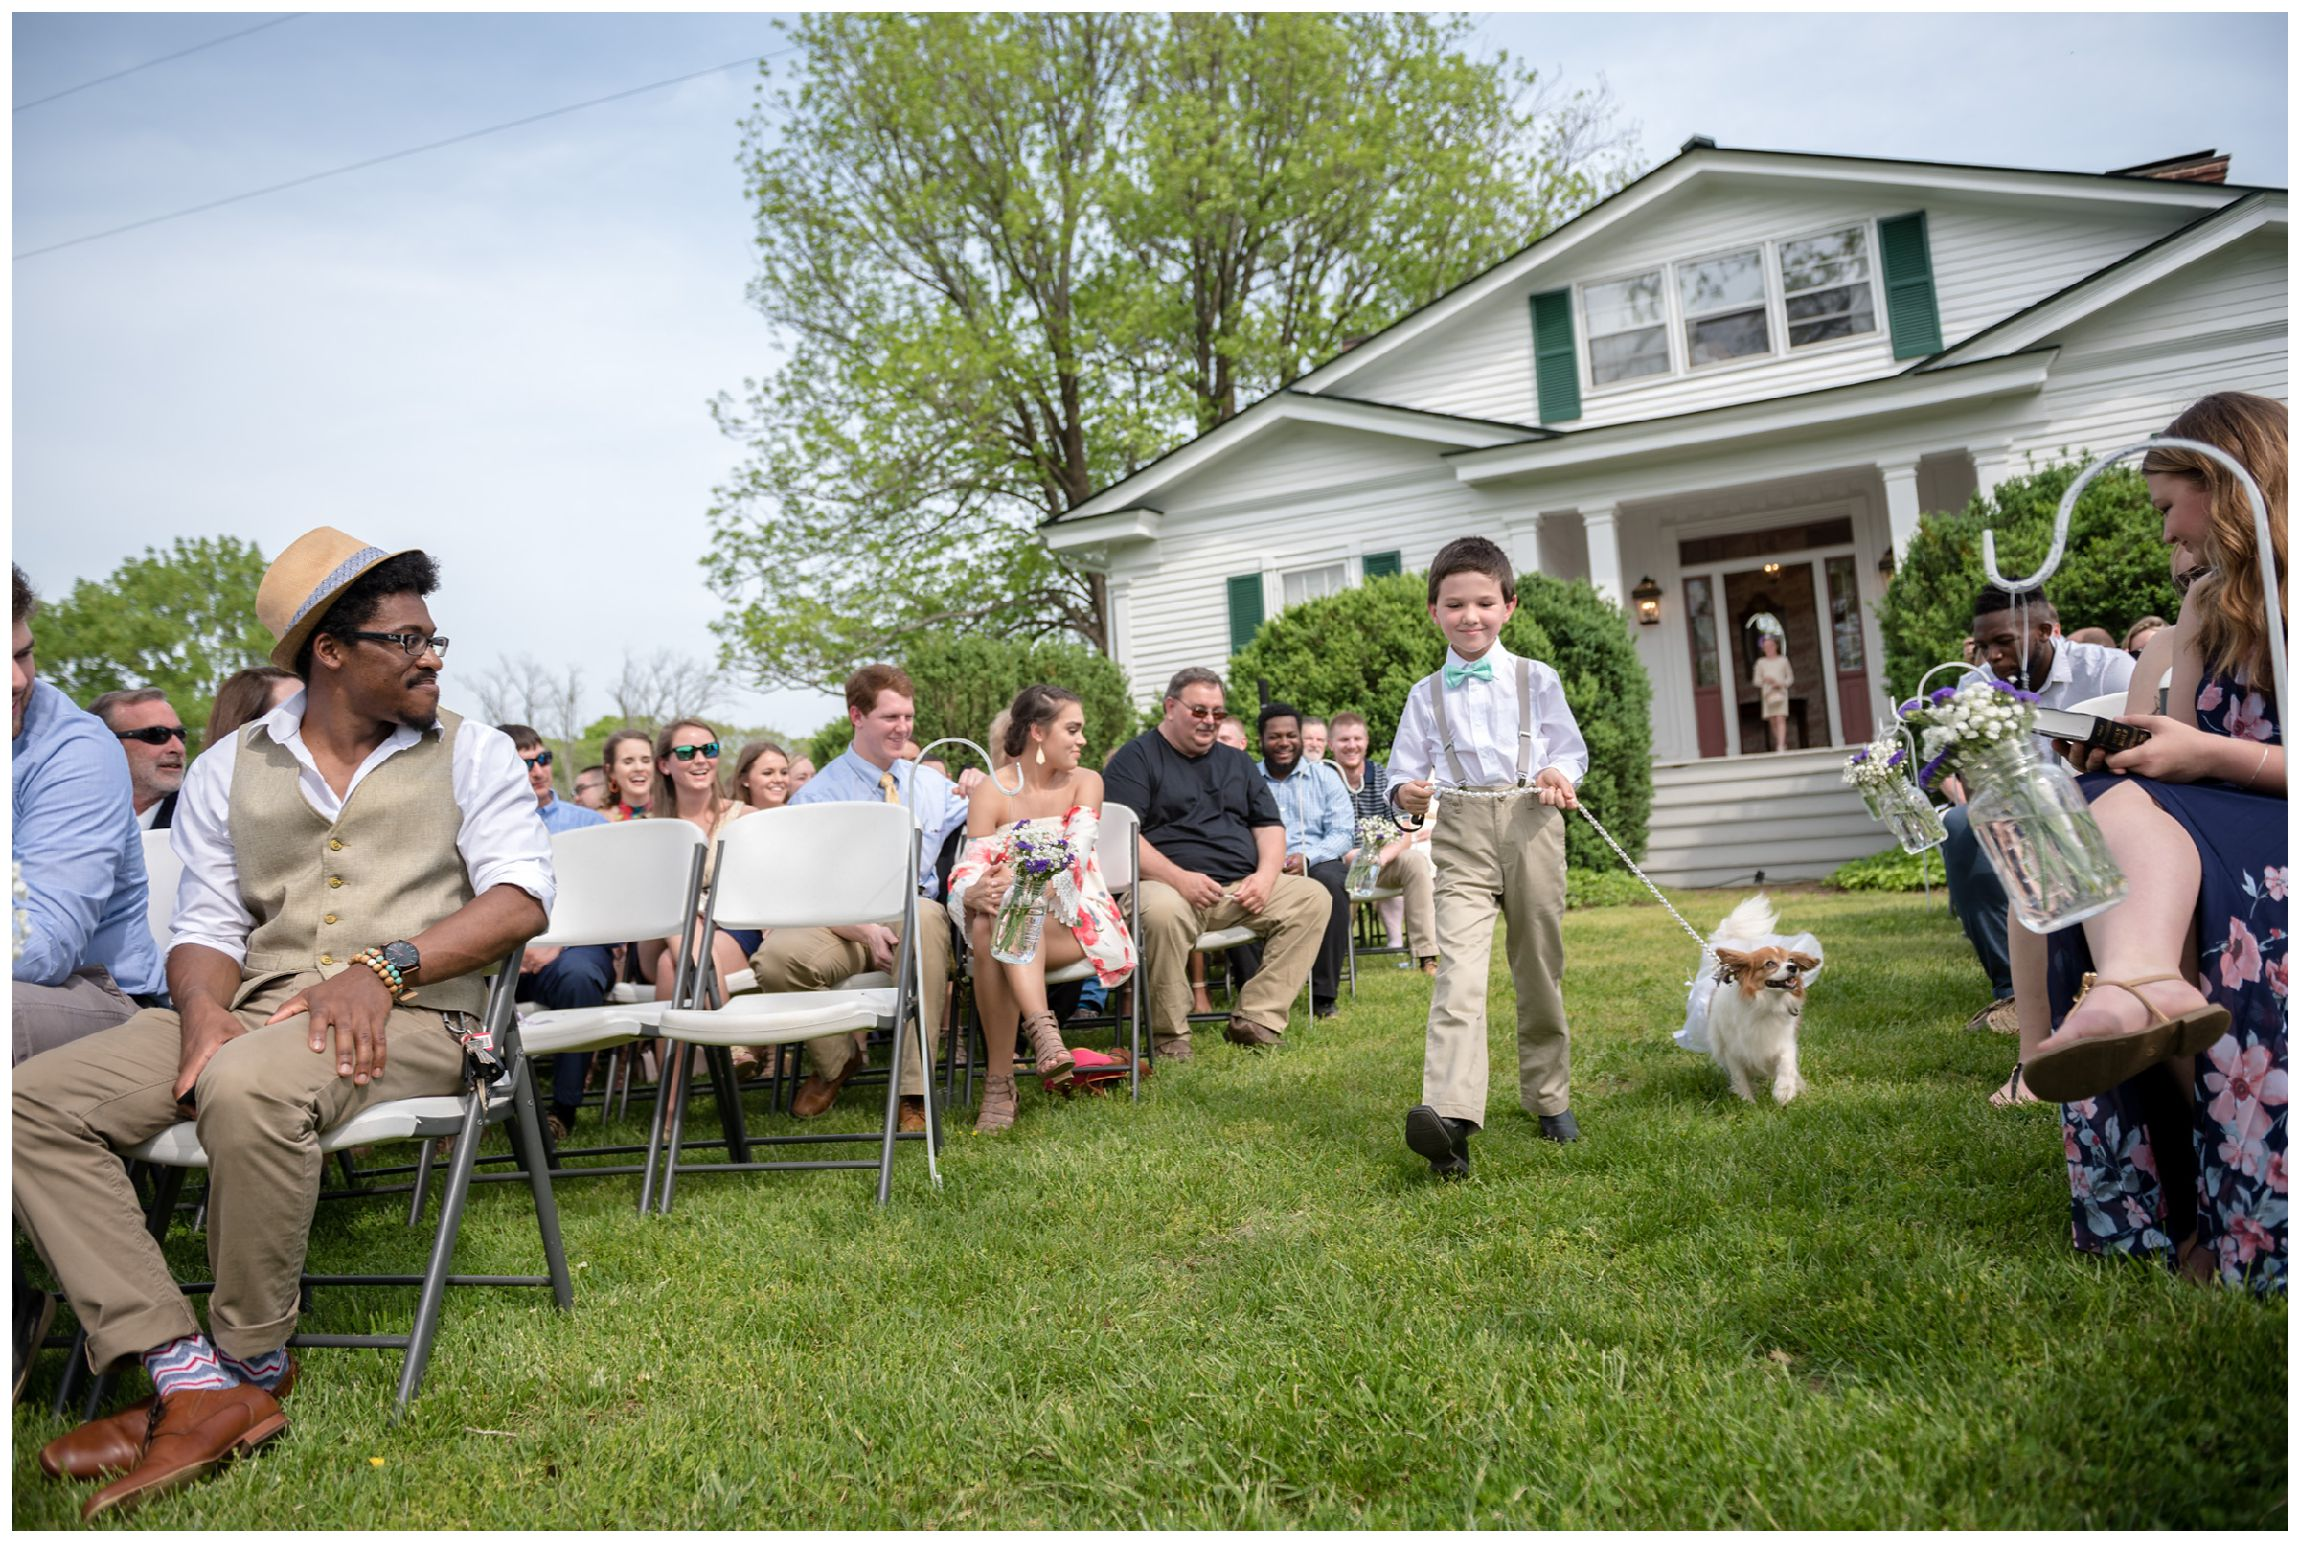 dog acts as ring bearer during wedding ceremony at Wolftrap Farm in Virginia